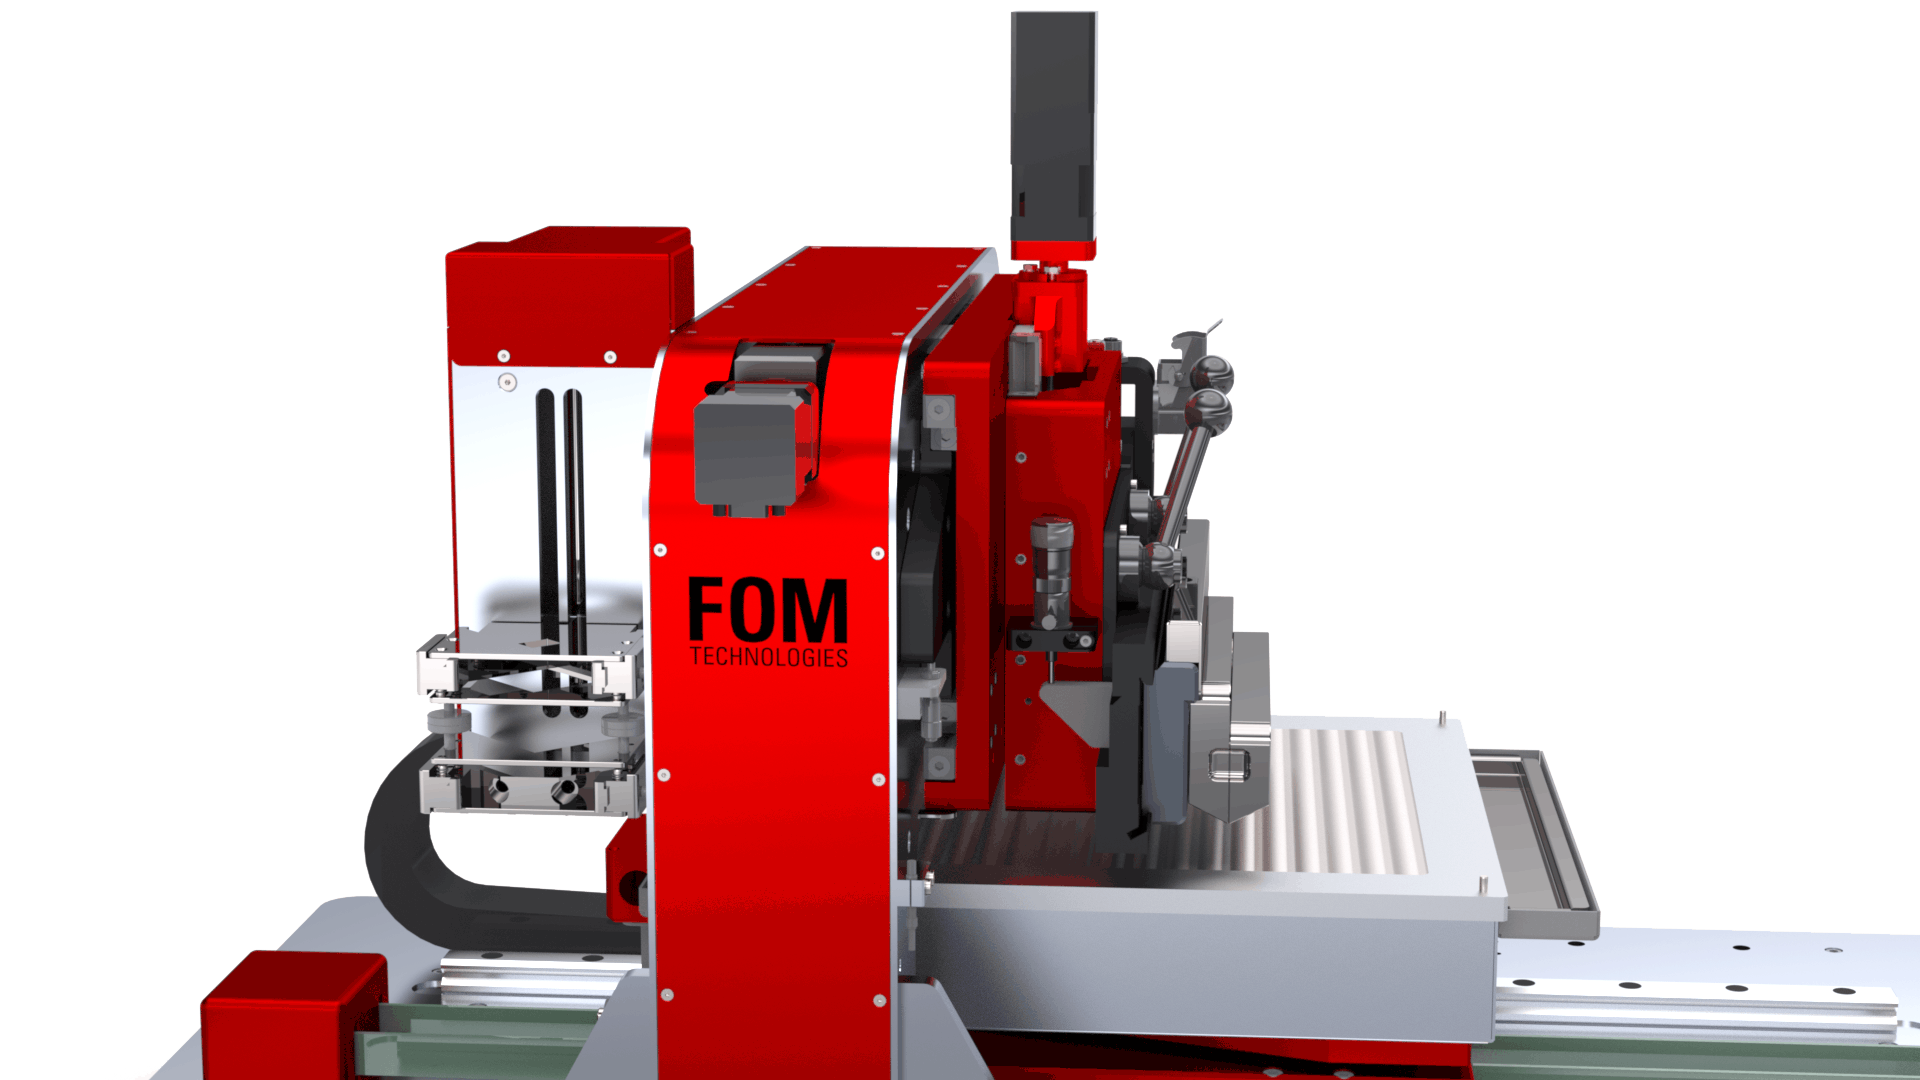 The intergrated pump on the FOM alphaSC